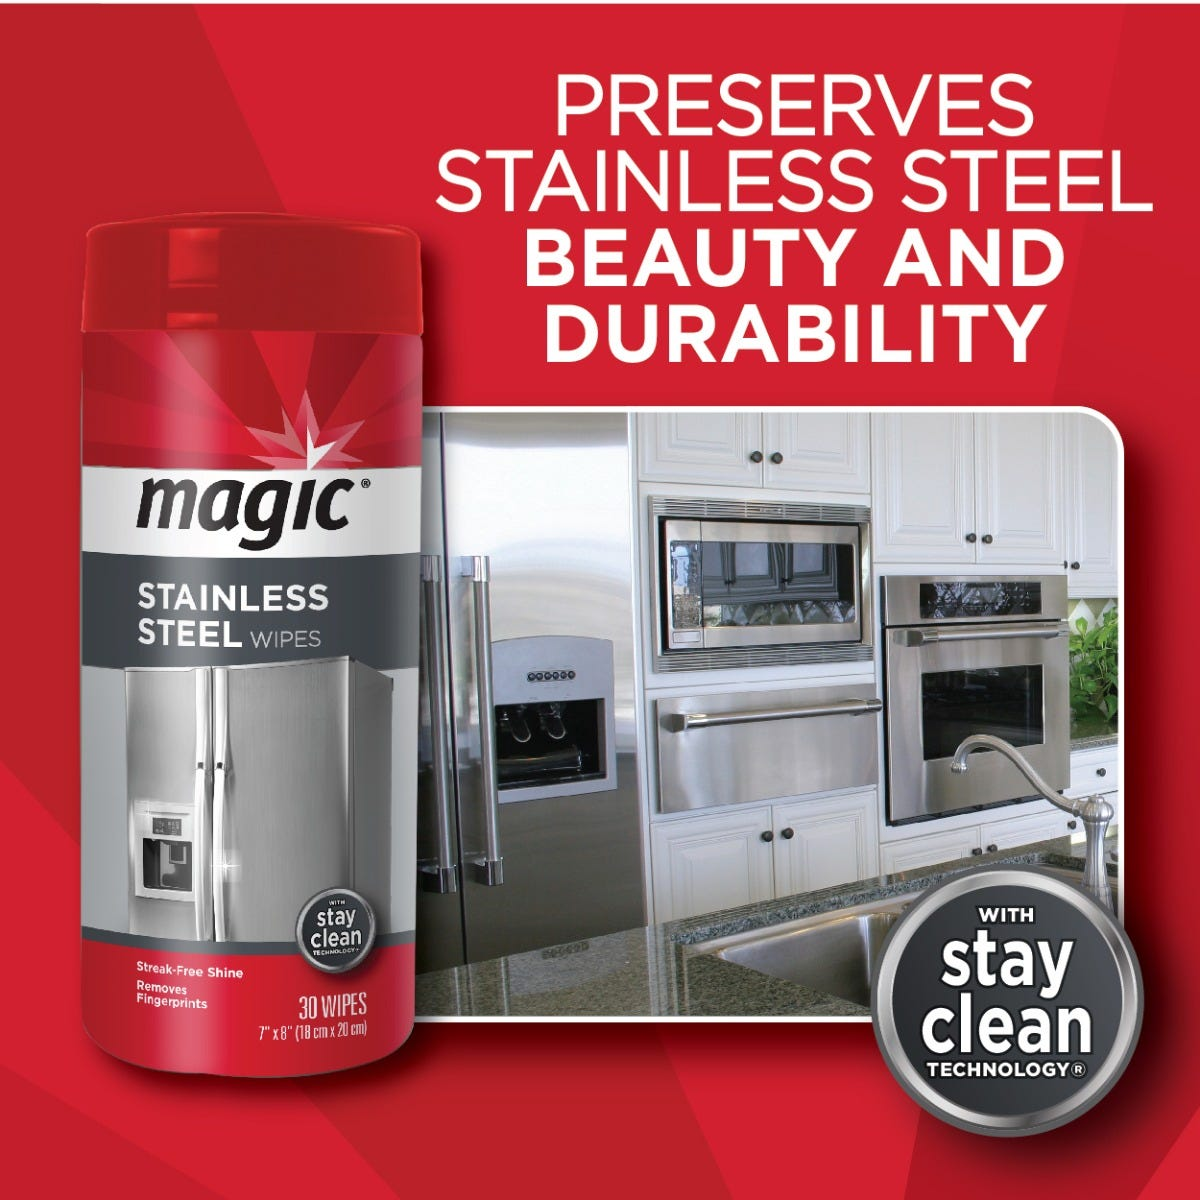 https://googone.com/media/catalog/product/m/a/magic_stainless_steel_wipes_beauty.jpg